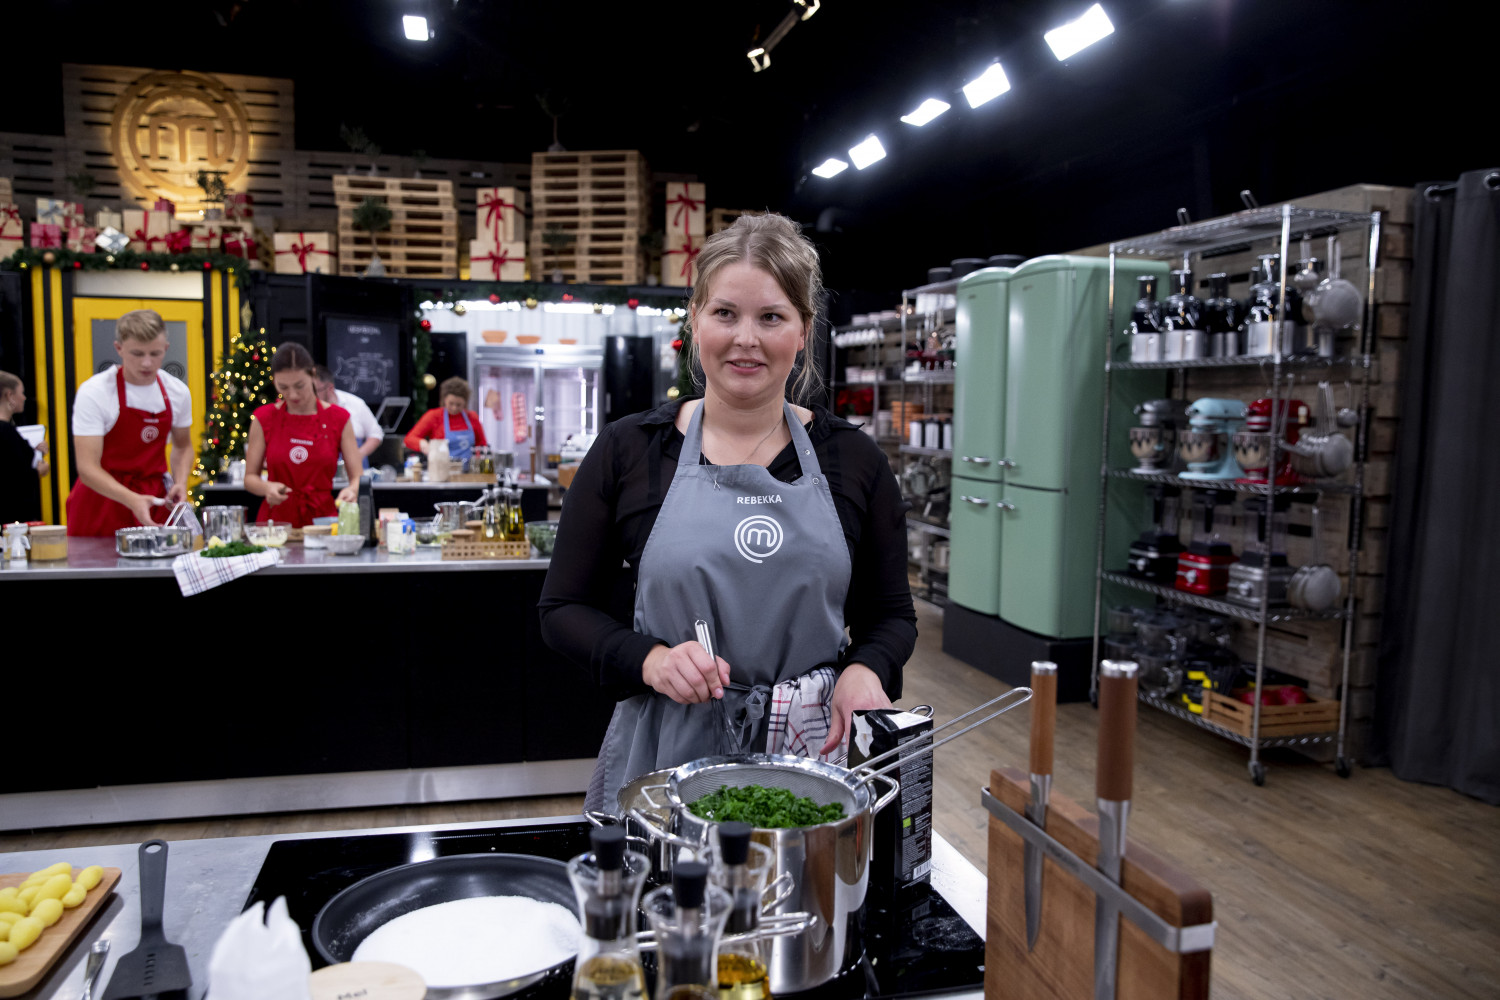 Rebekka i MasterChef Jul 2019 - Rebekka MIkkelsen aka Beksemad Foto: TV3